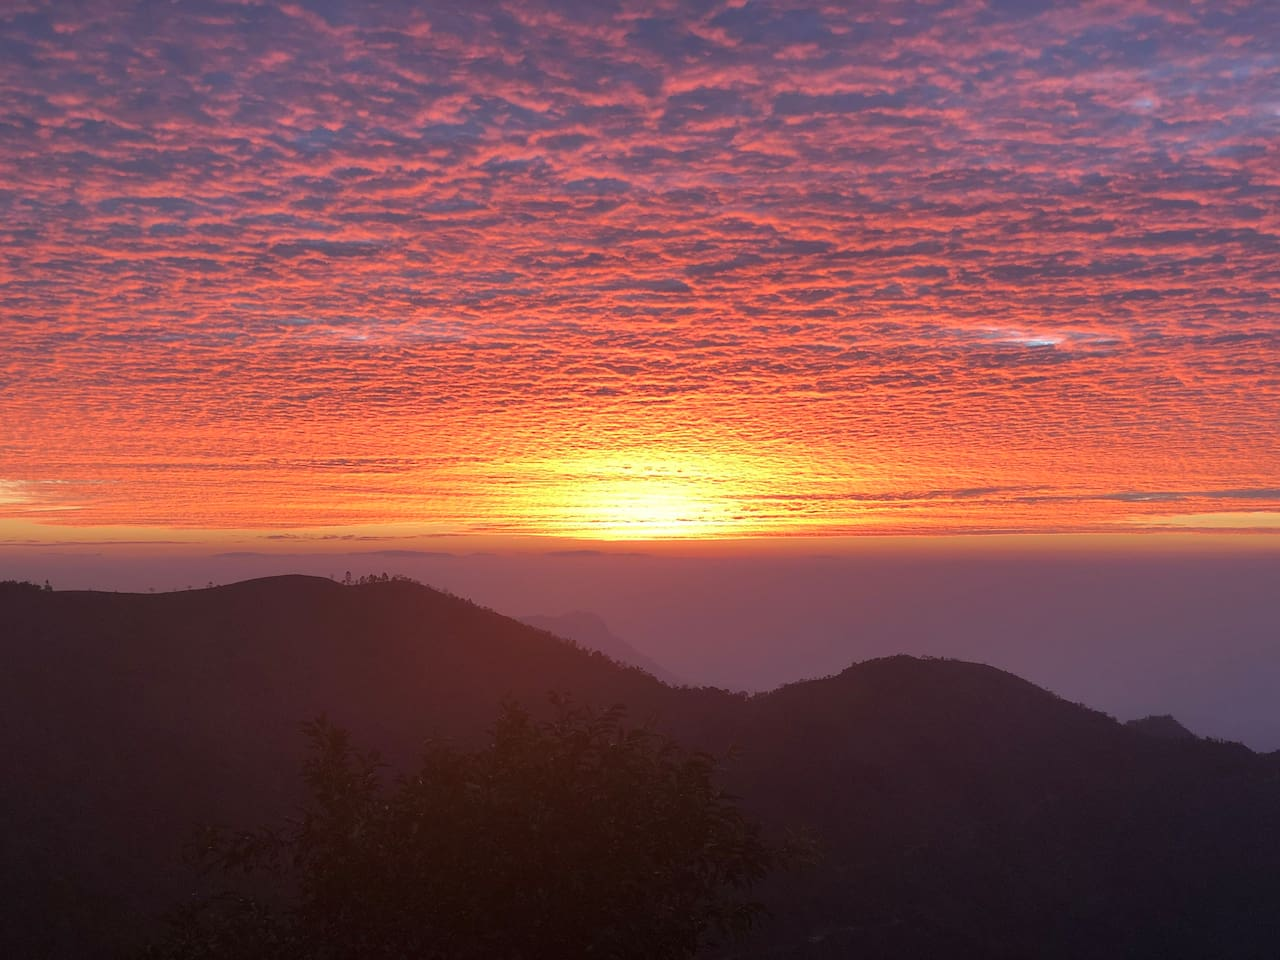 A gorgeous sunrise taken from sunrise chalet on Feb 6th 2019